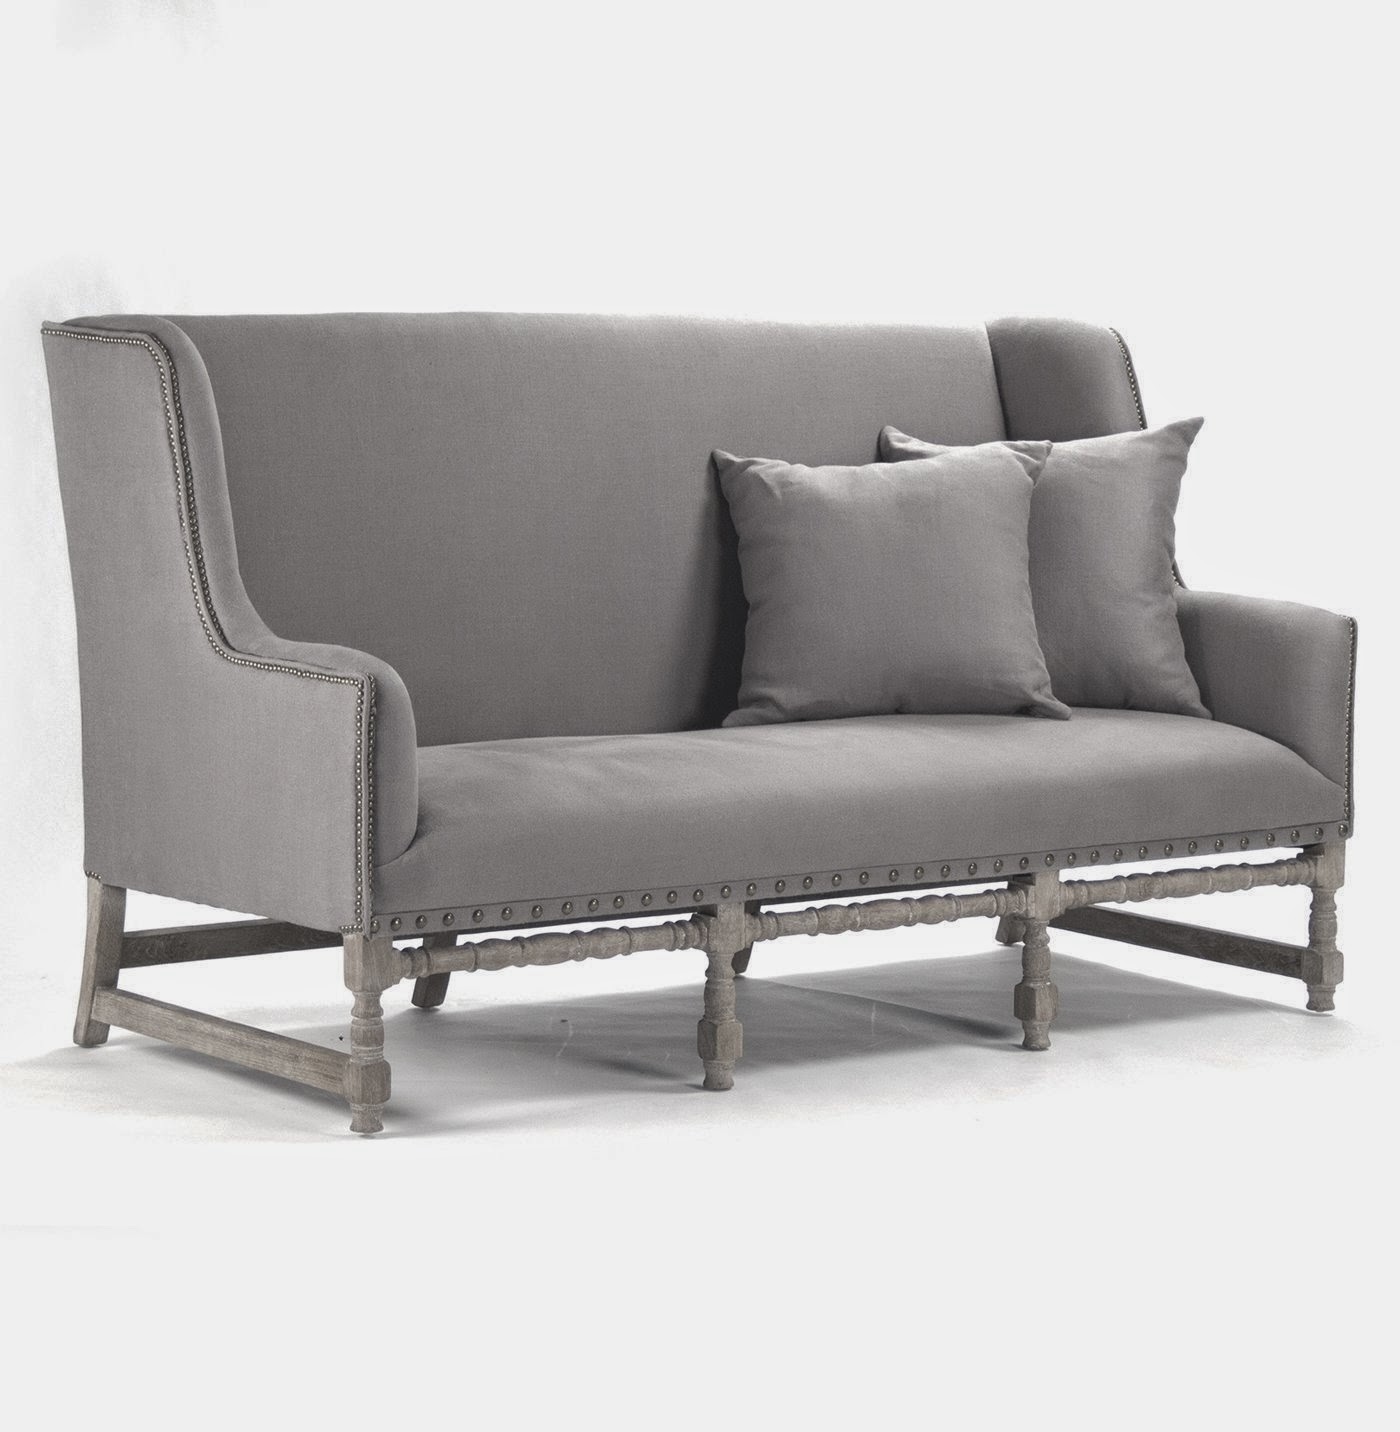 Gray Oversized Chair Oversized Couches Oversized Deep Couches